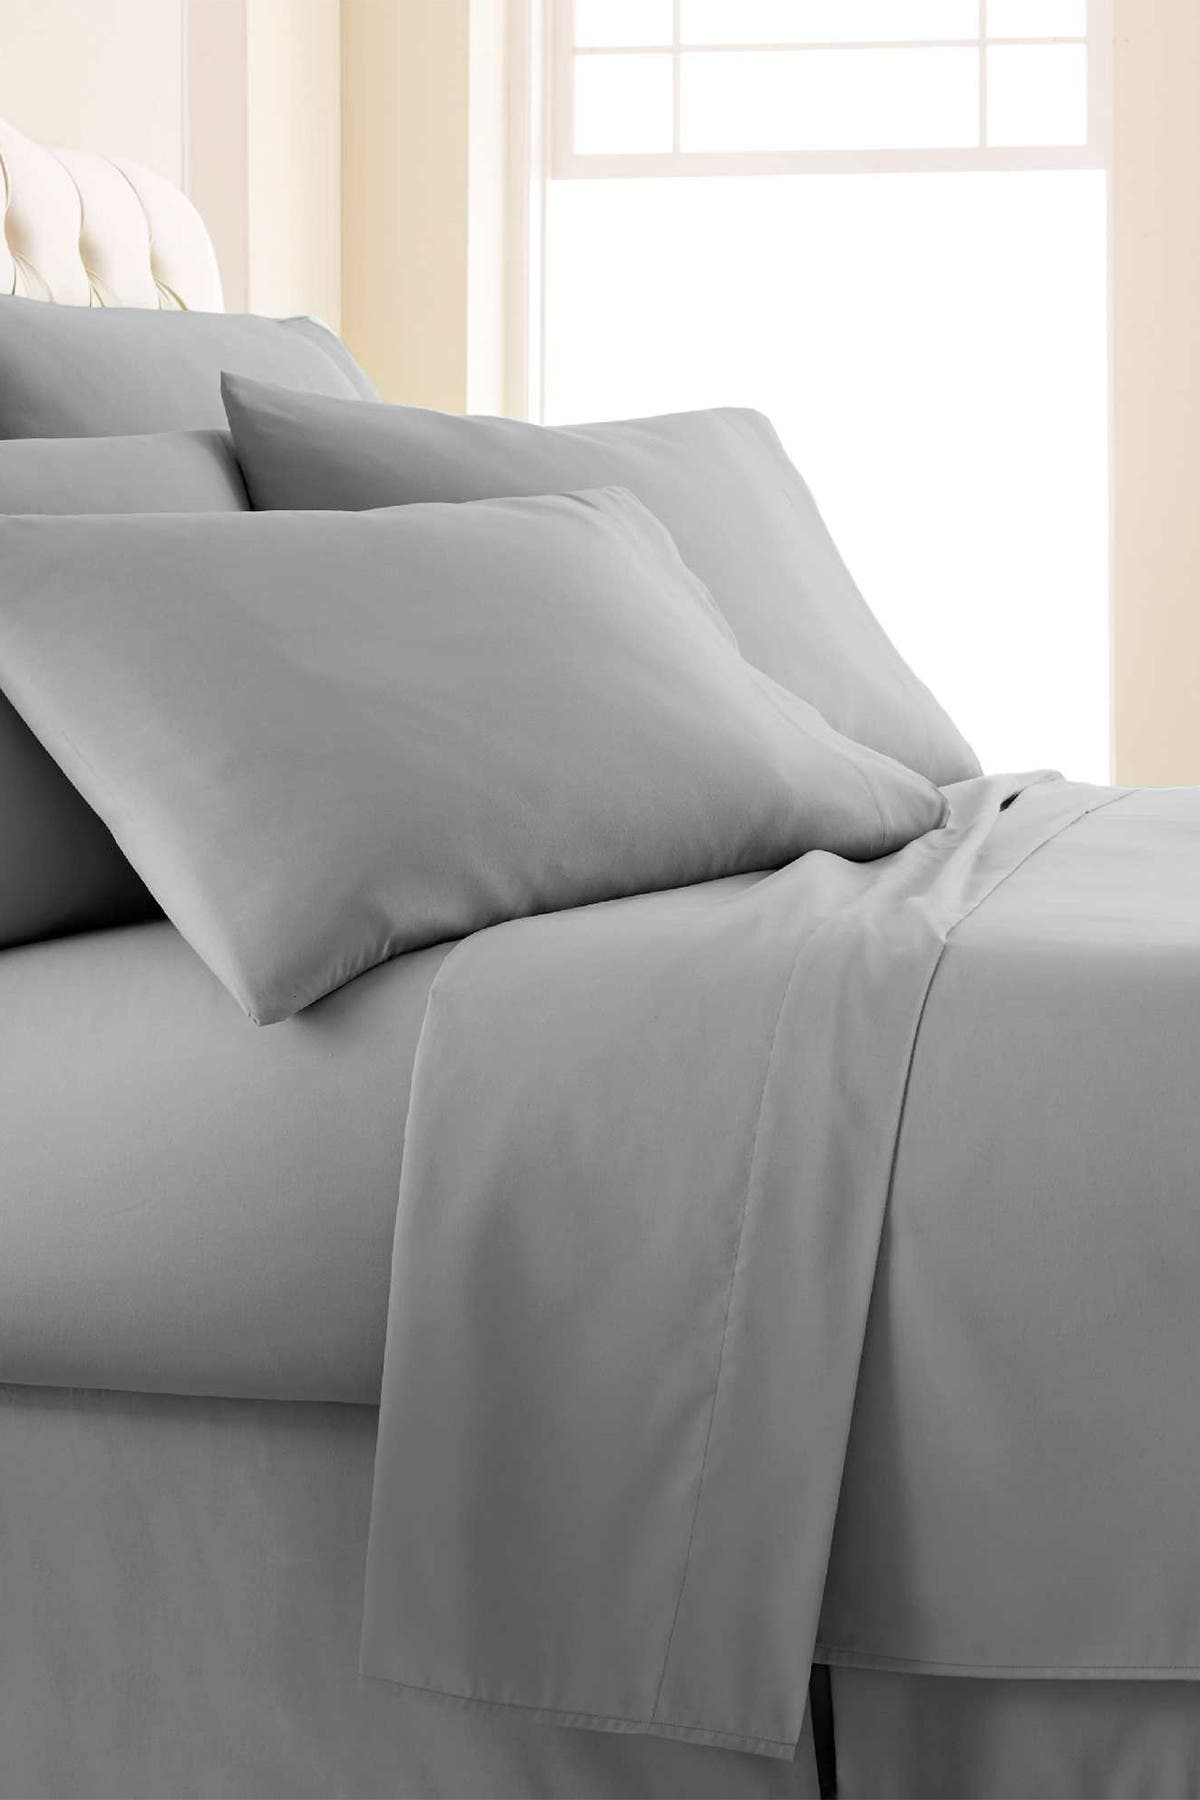 Image of SOUTHSHORE FINE LINENS Queen Sized Southshore Essentials Double Brushed 100 GSM Sheet Set - Steel Grey